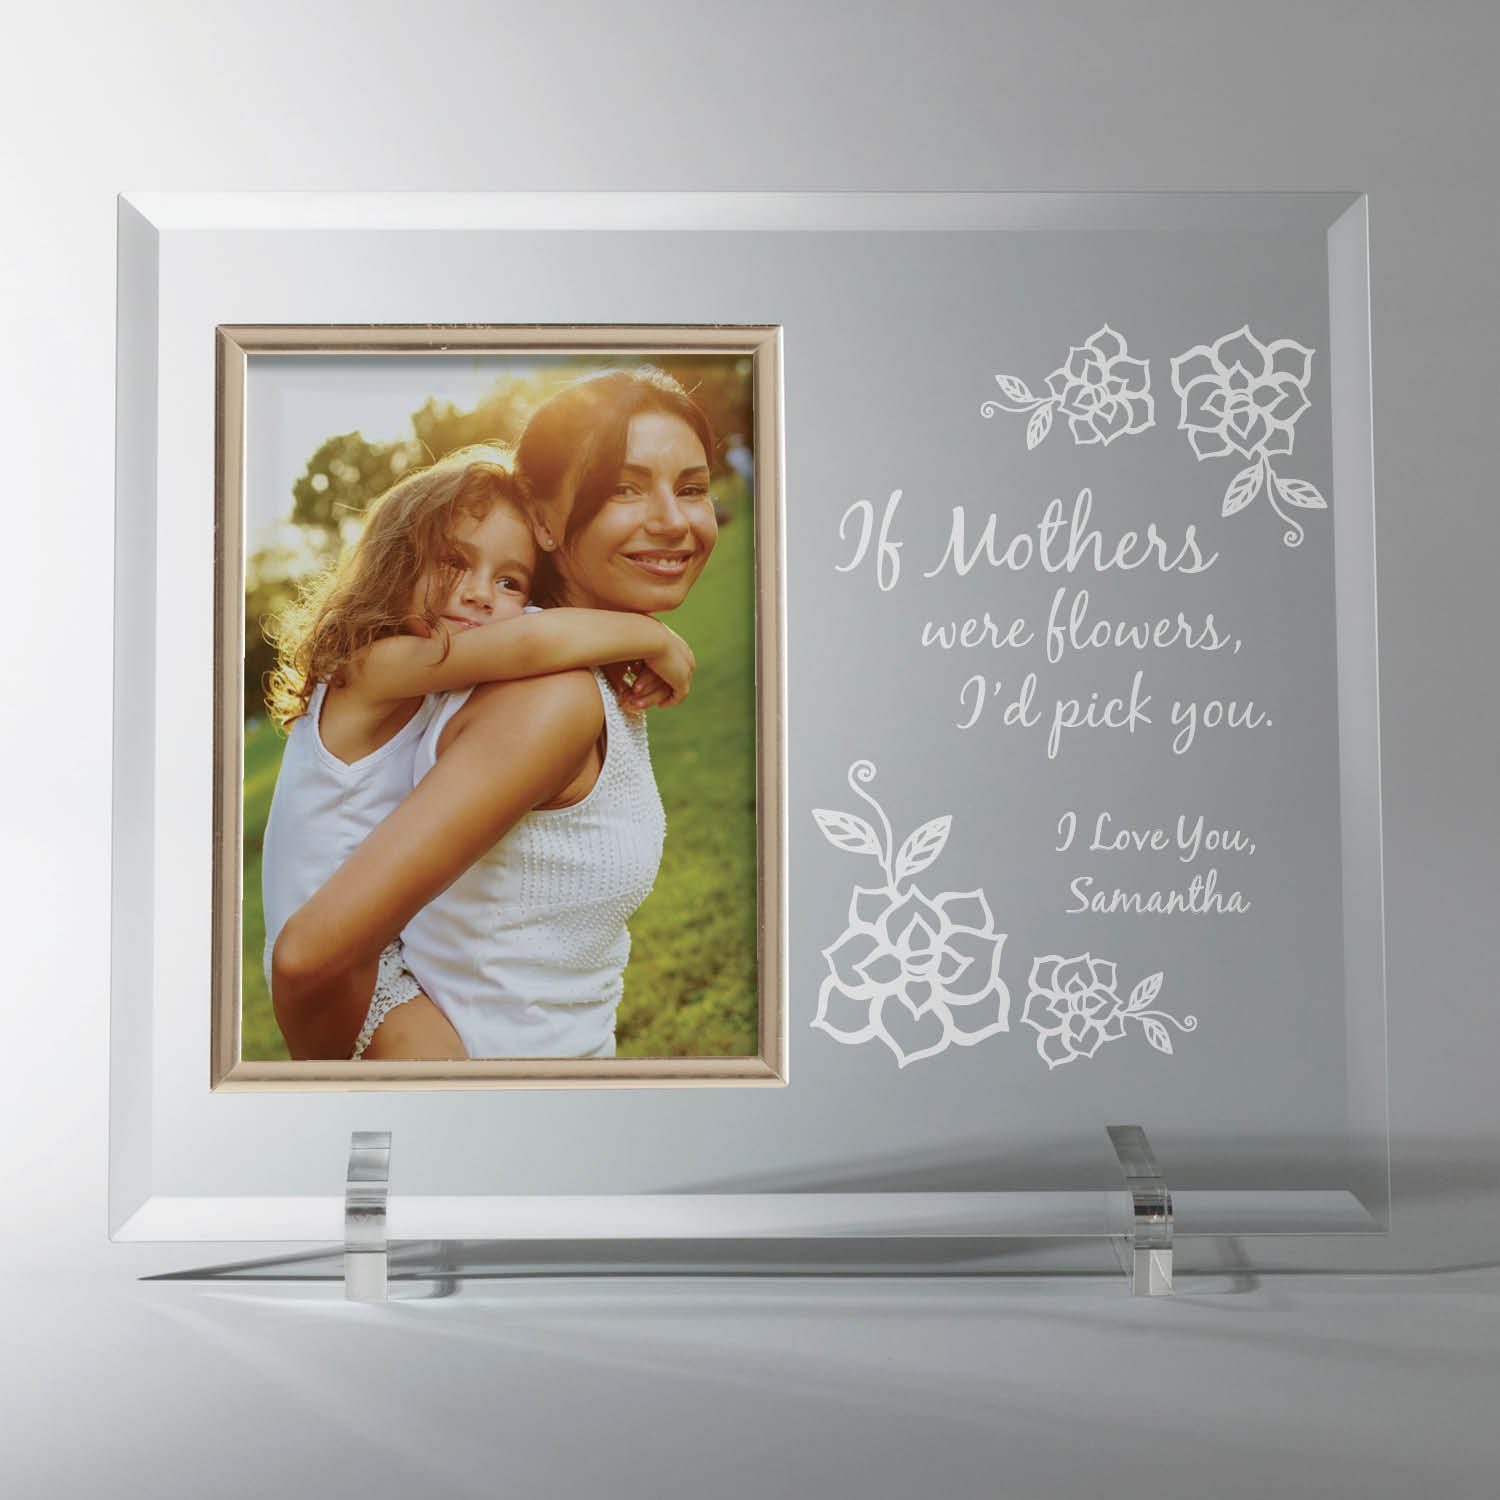 This beautiful personalized glass picture frame will be treasured fo ...